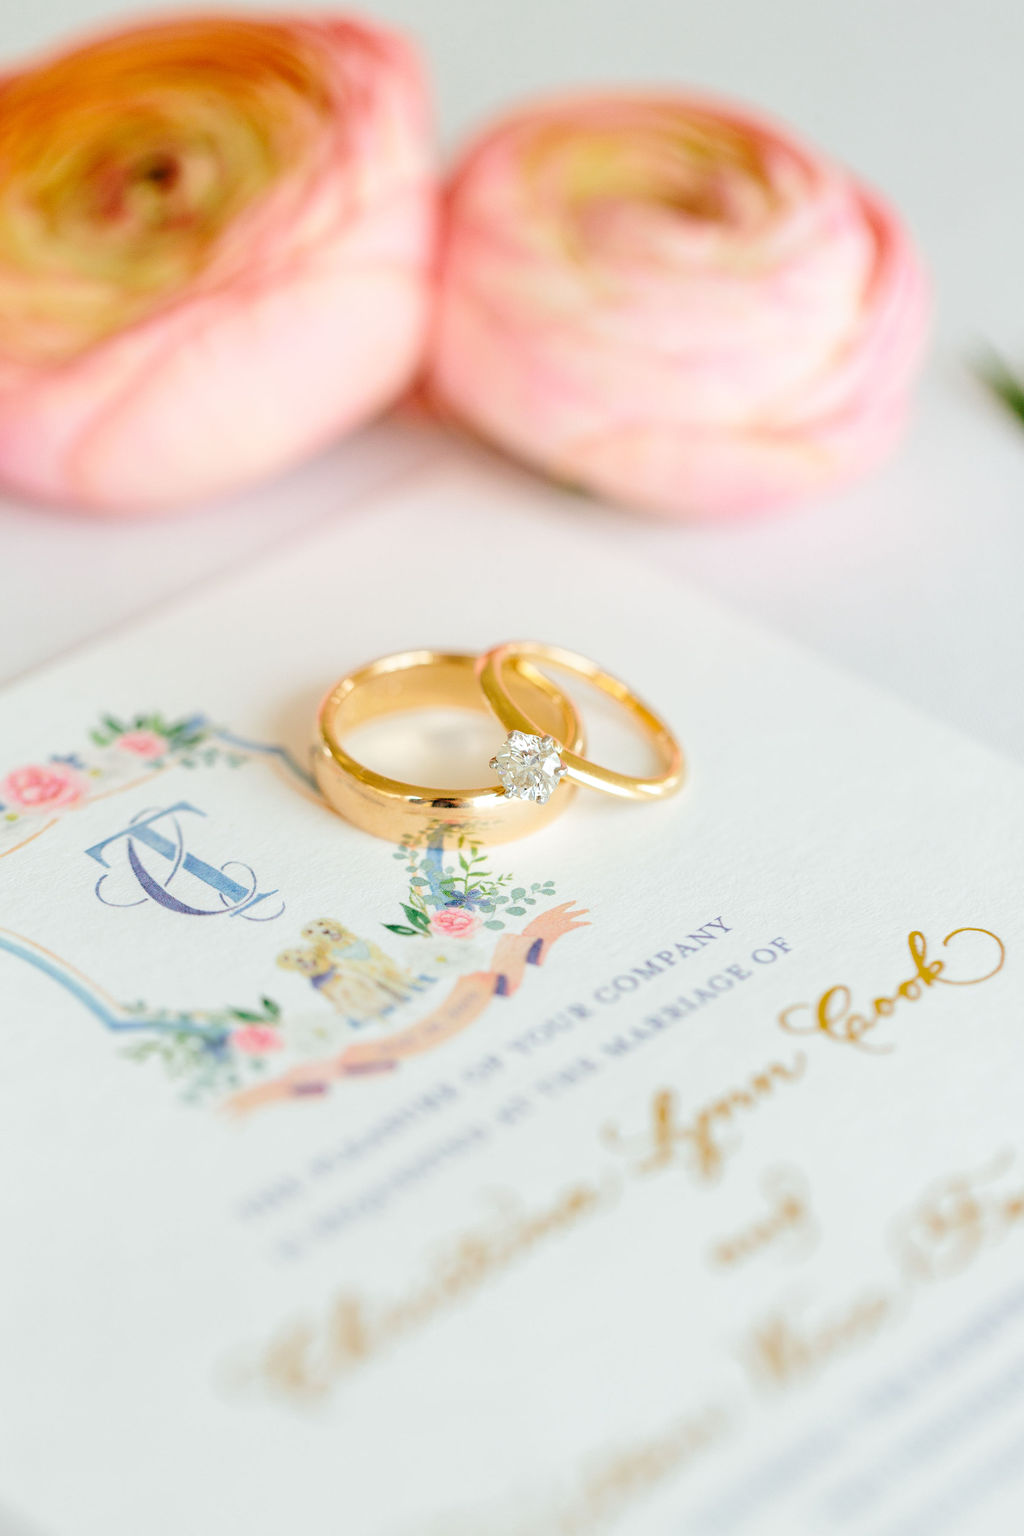 Rings on invitation with pink and blue watercolor crest - Preppy spring wedding at Zingerman's Cornman Farms - Leah E. Moss Designs - photo by Katie Grace Photography